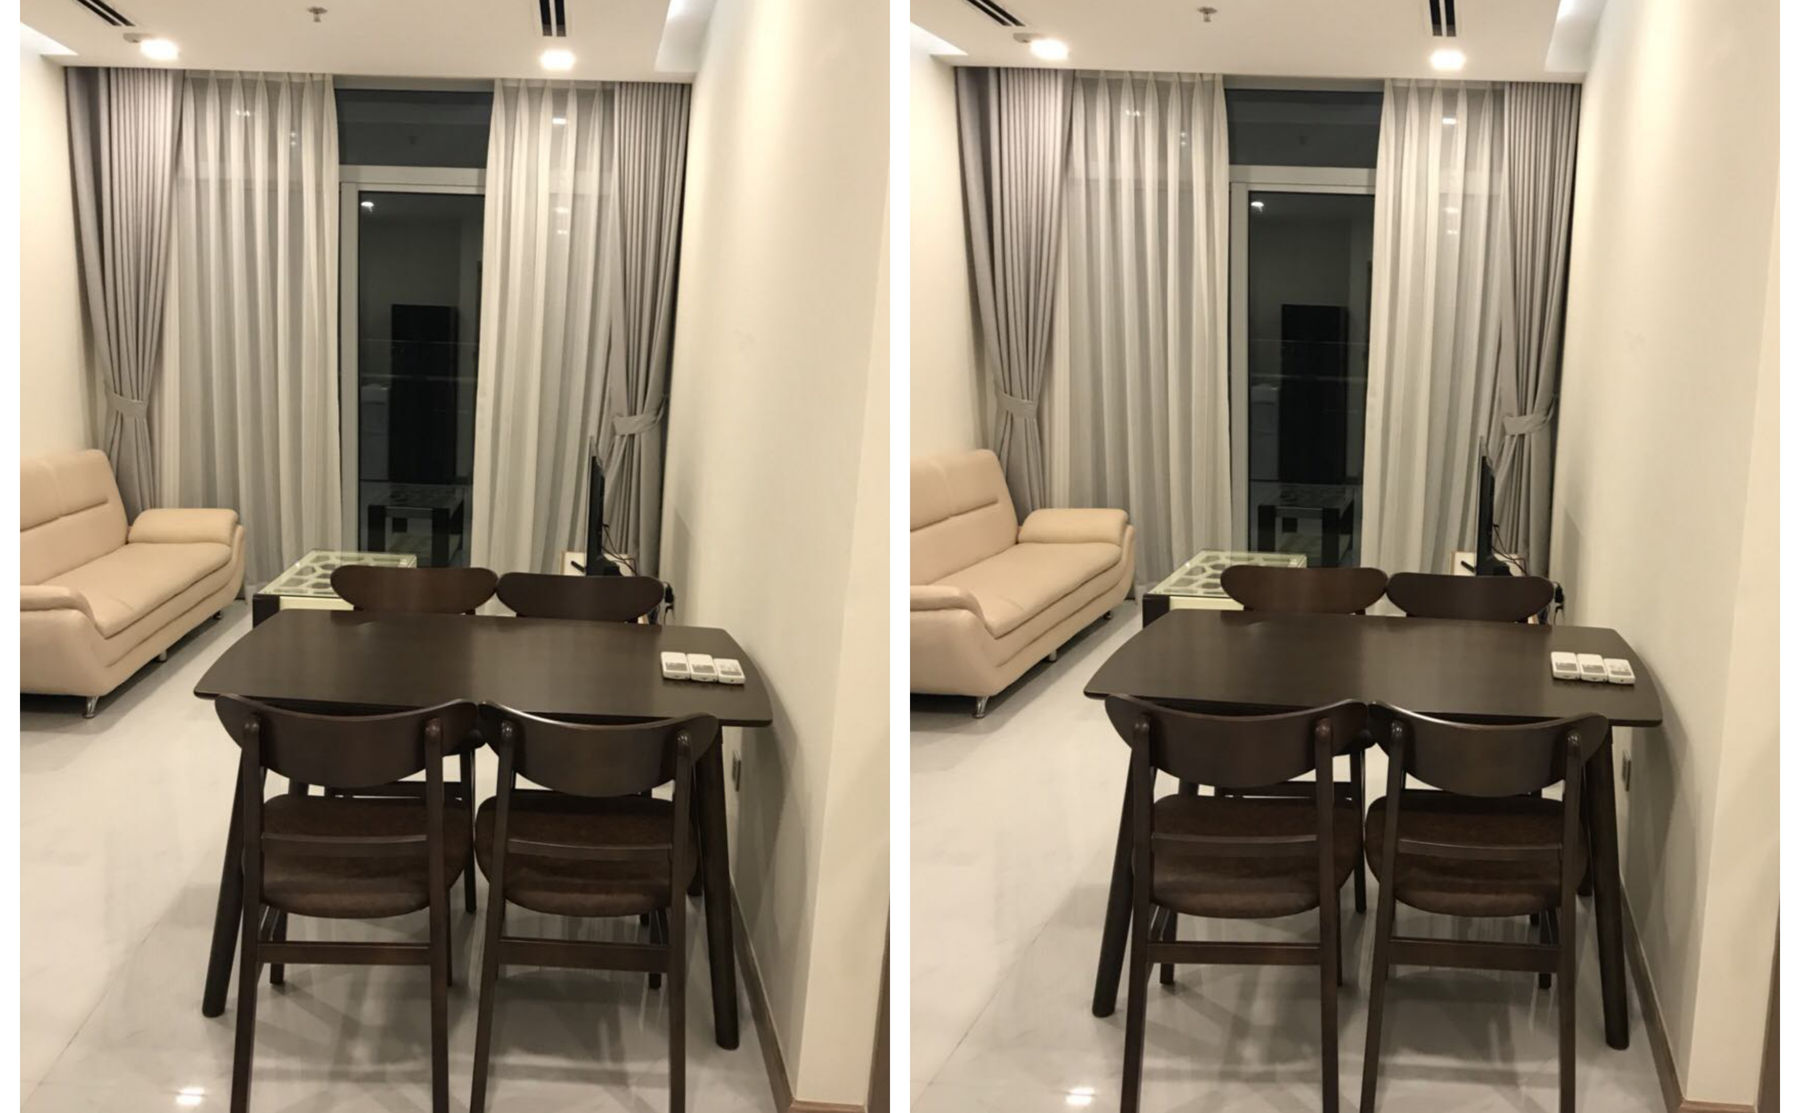 apartment for rent in binh thanh district BT105P222 (4)